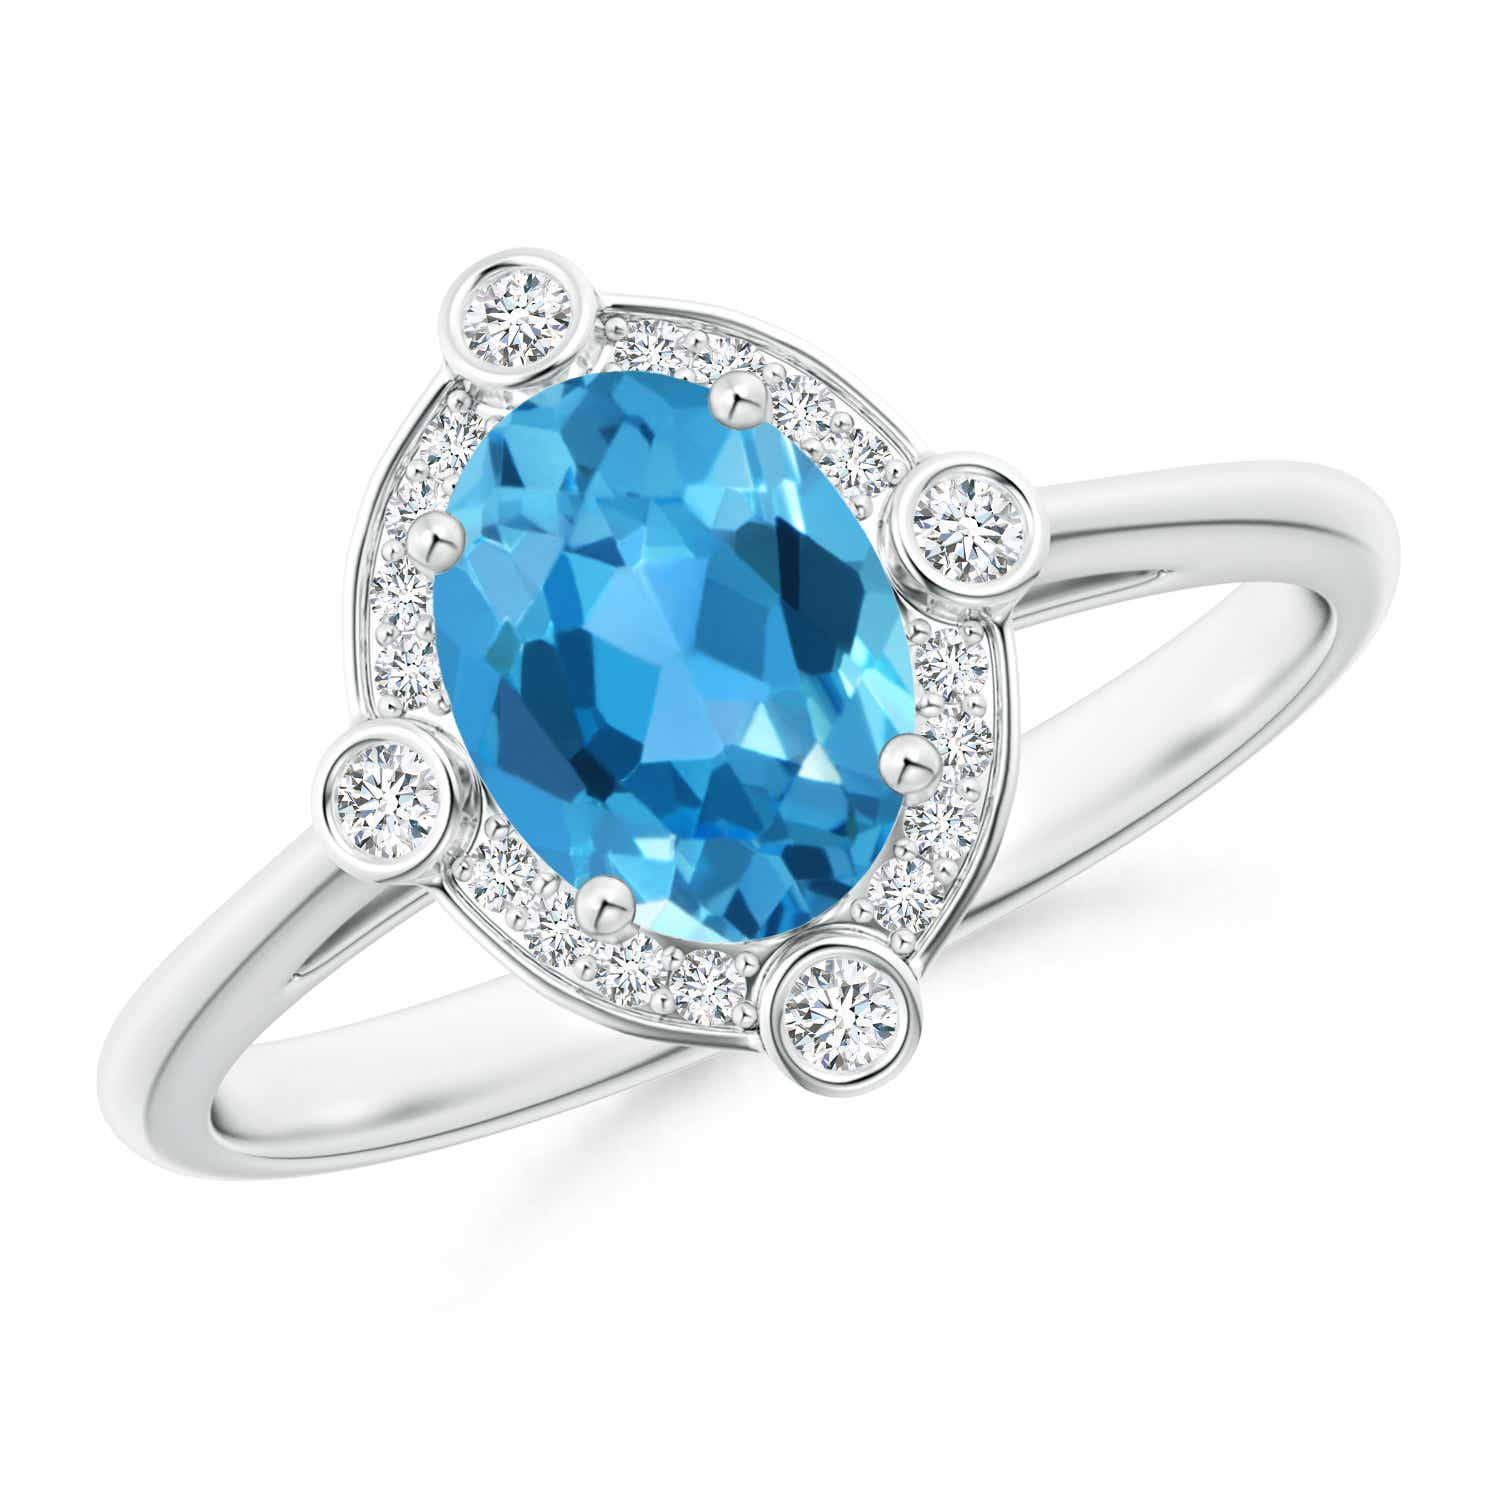 Angara Round Swiss Blue Topaz Halo Ring with Diamond Accents